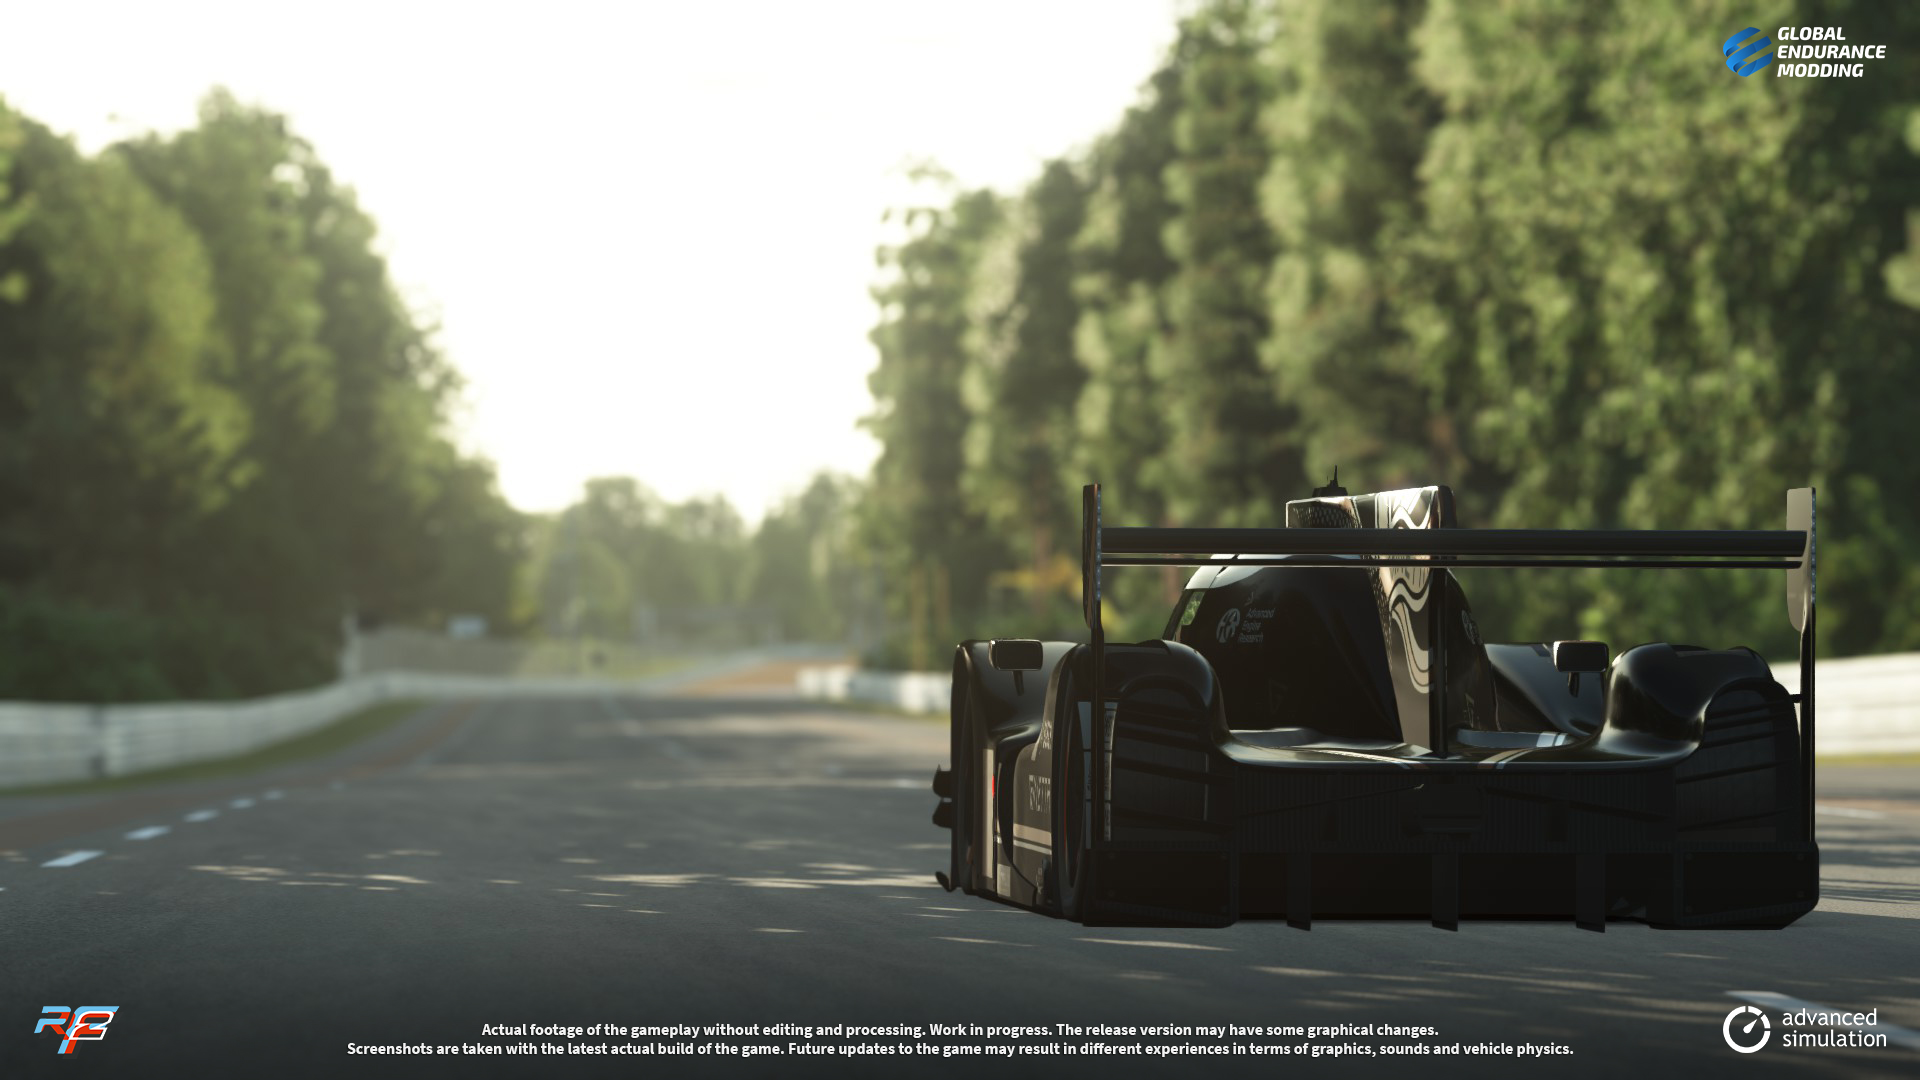 screen-016 Ginetta G60-LT-P1 LMP1 for rFactor 2 – More Previews